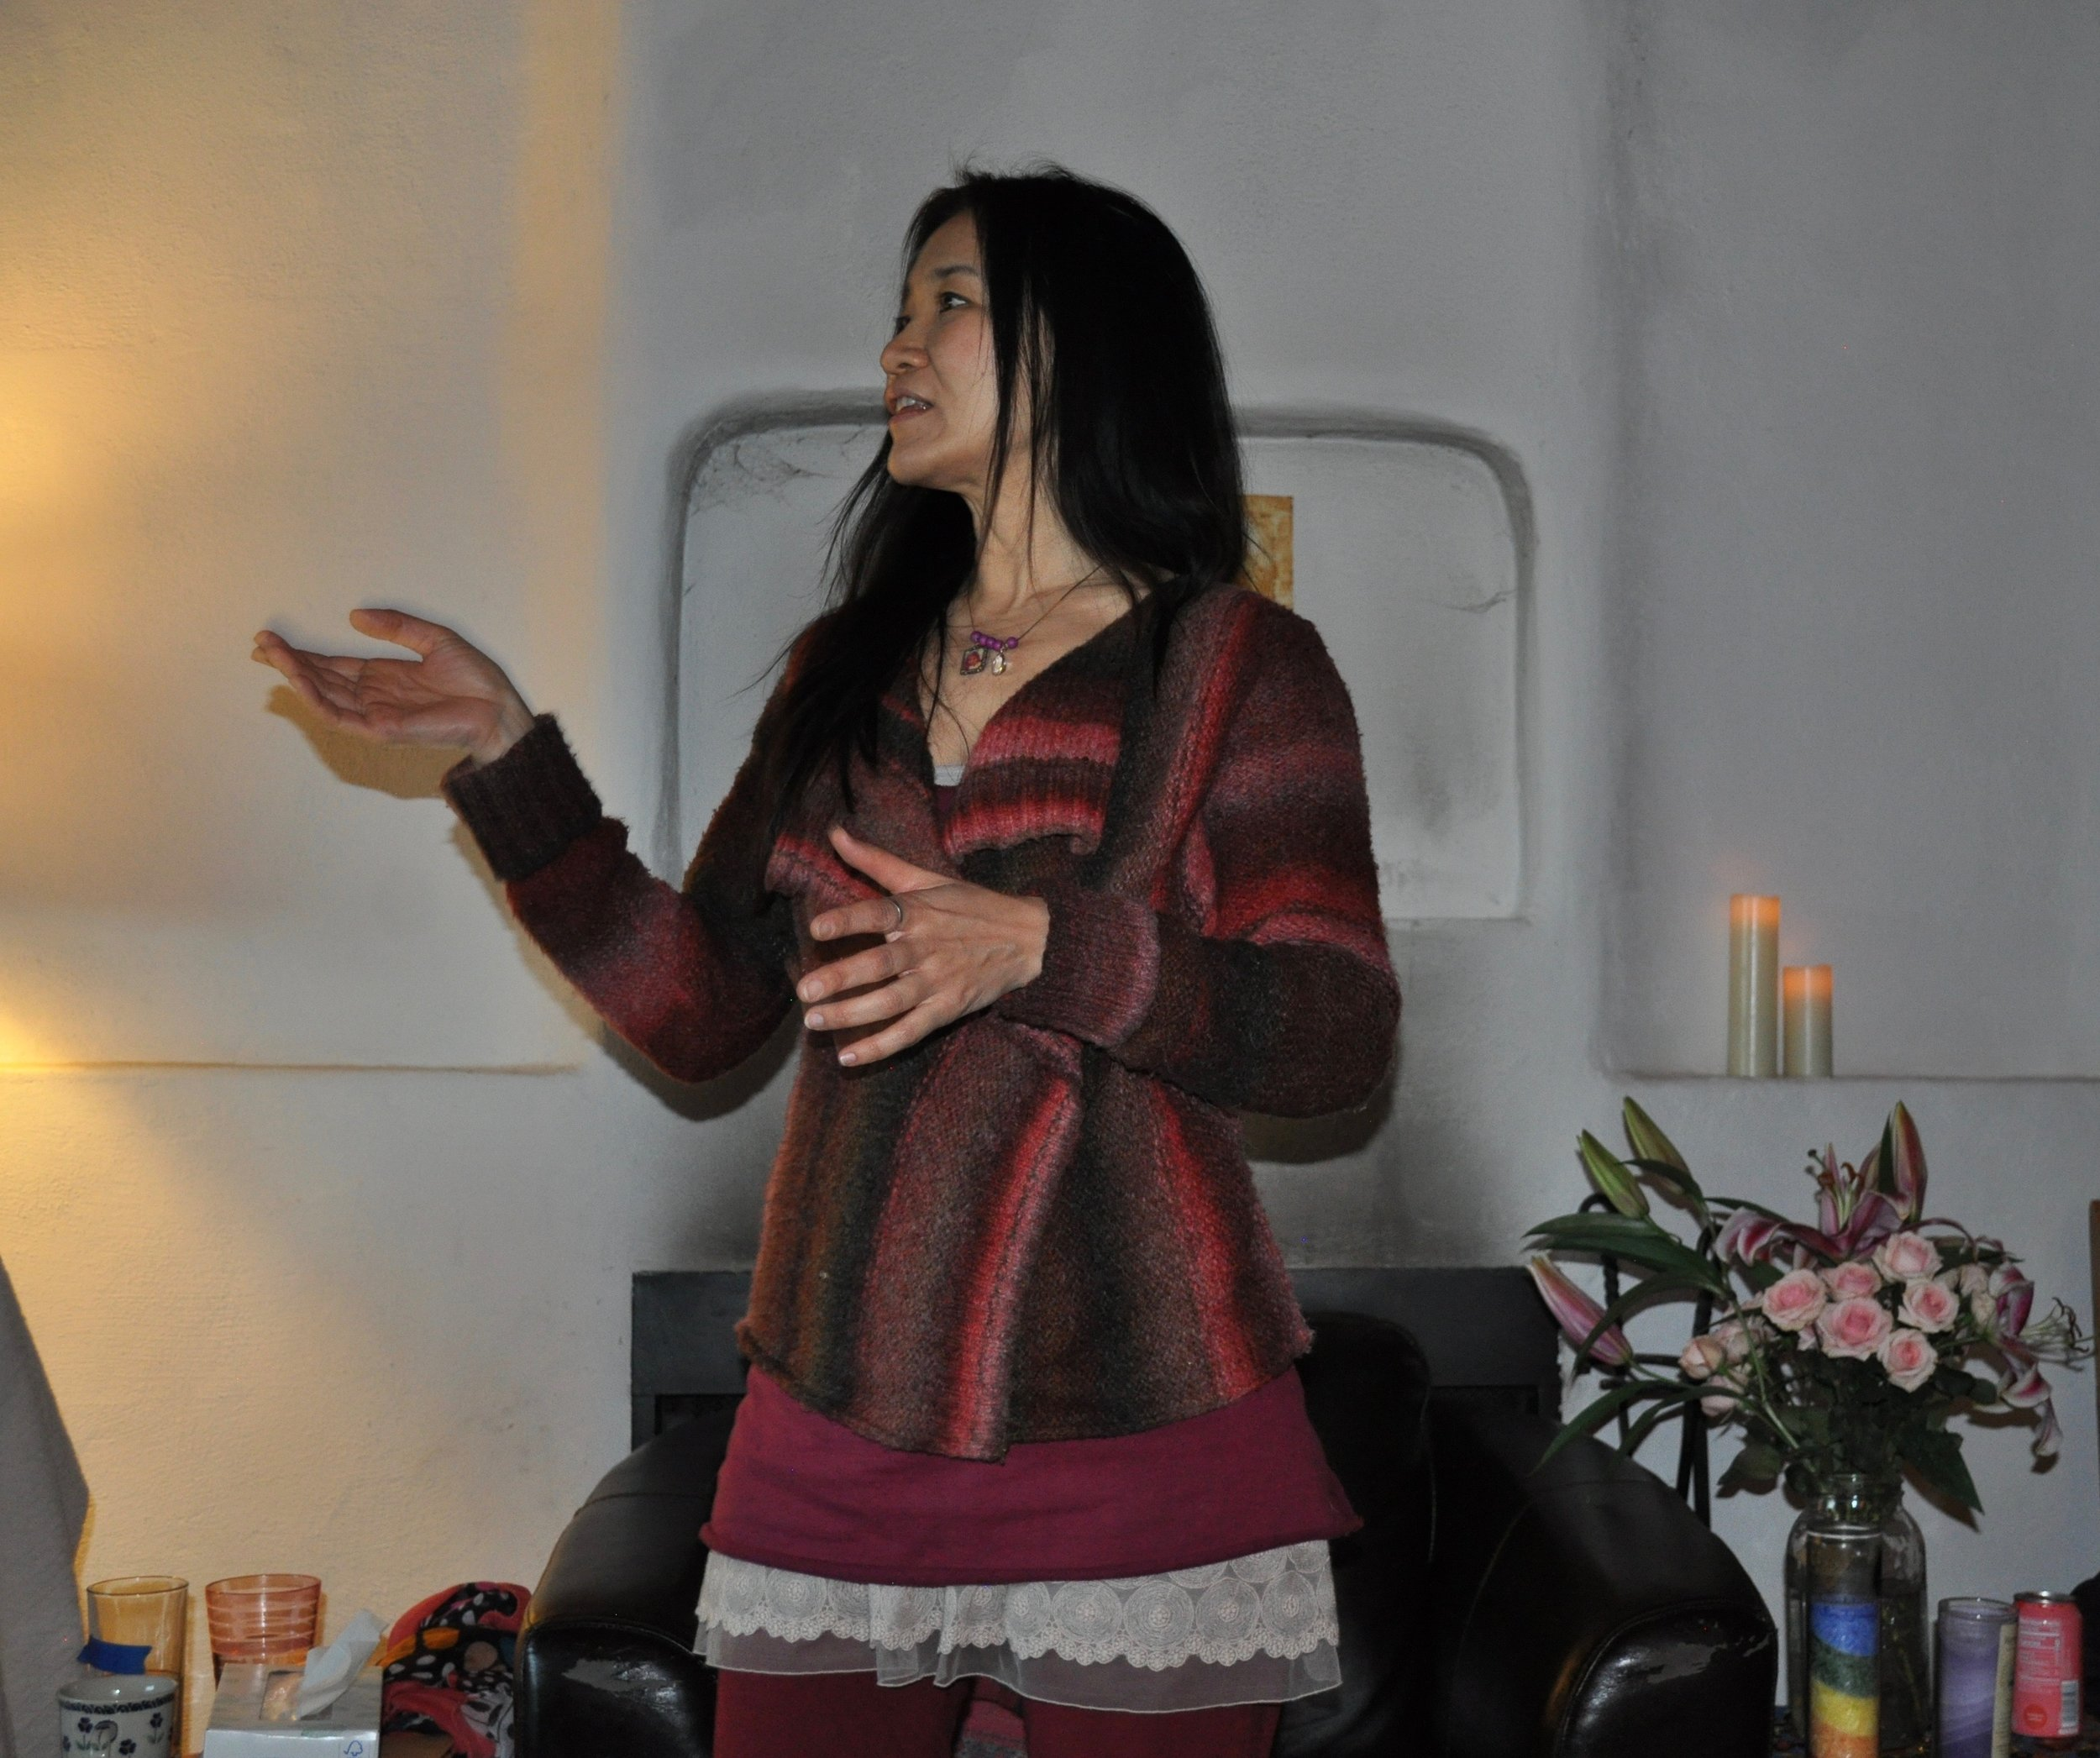 Leading an embodied singing and musical healing session for author Mirabai Starr's retreatants at the Ghost Ranch Retreat Center in New Mexico.